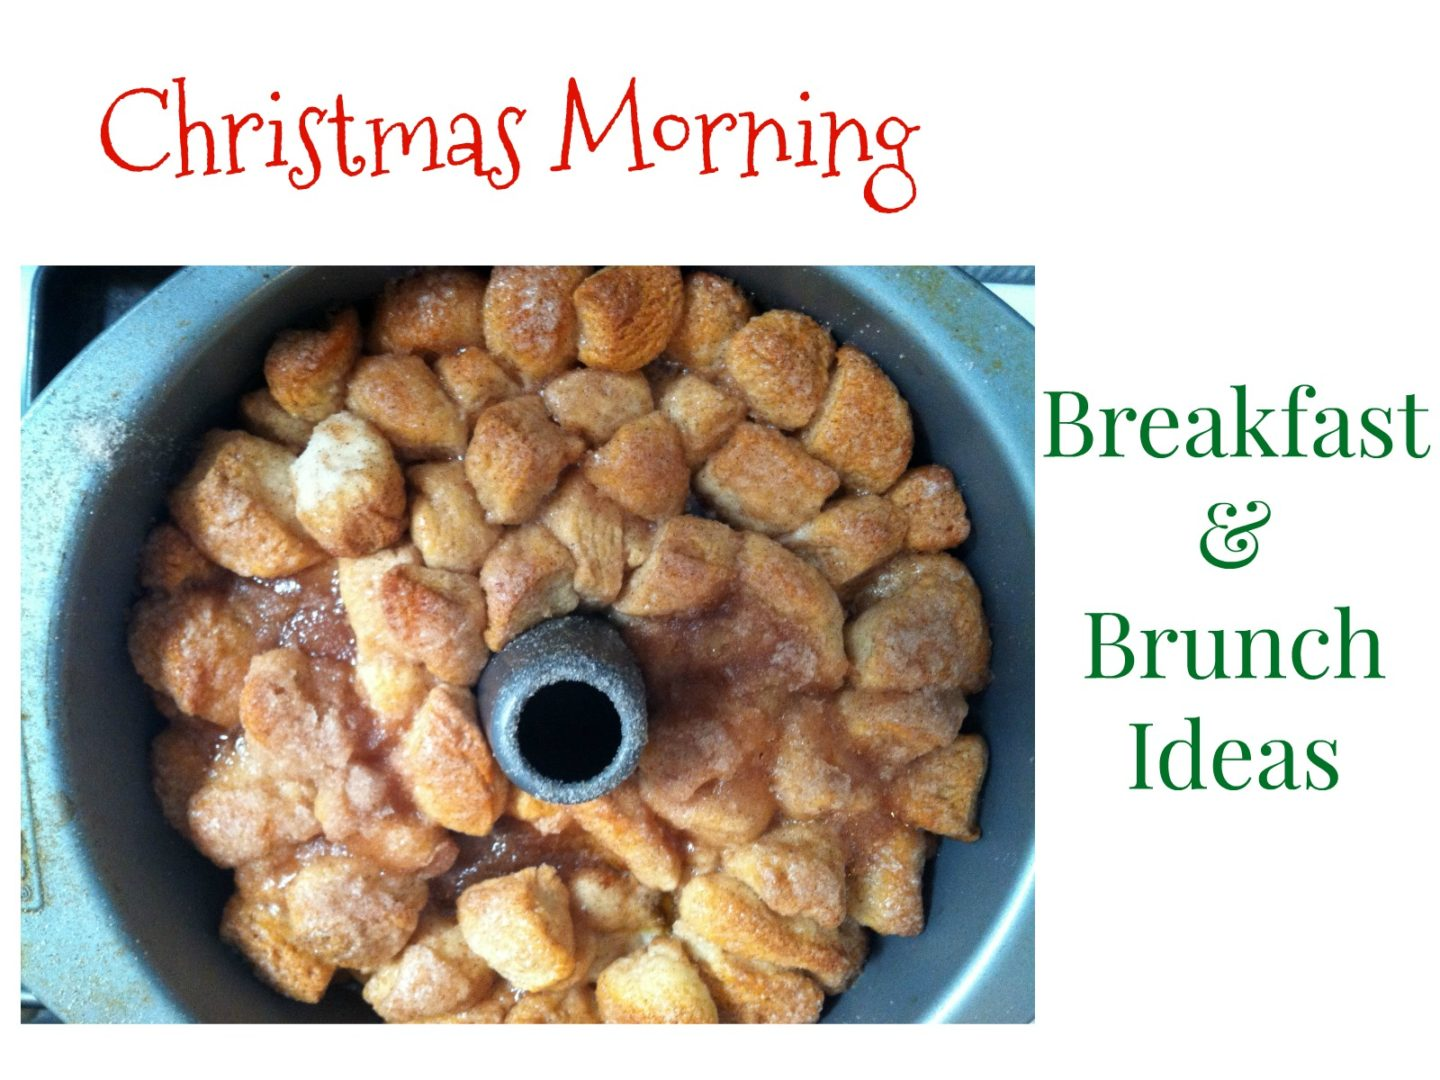 Christmas Morning Breakfast and Brunch Ideas   AlwaysMovingMommy.com   You should spend Christmas morning with your loved ones, not slaving over the stove.  Check out these quick and easy breakfast and brunch ideas.